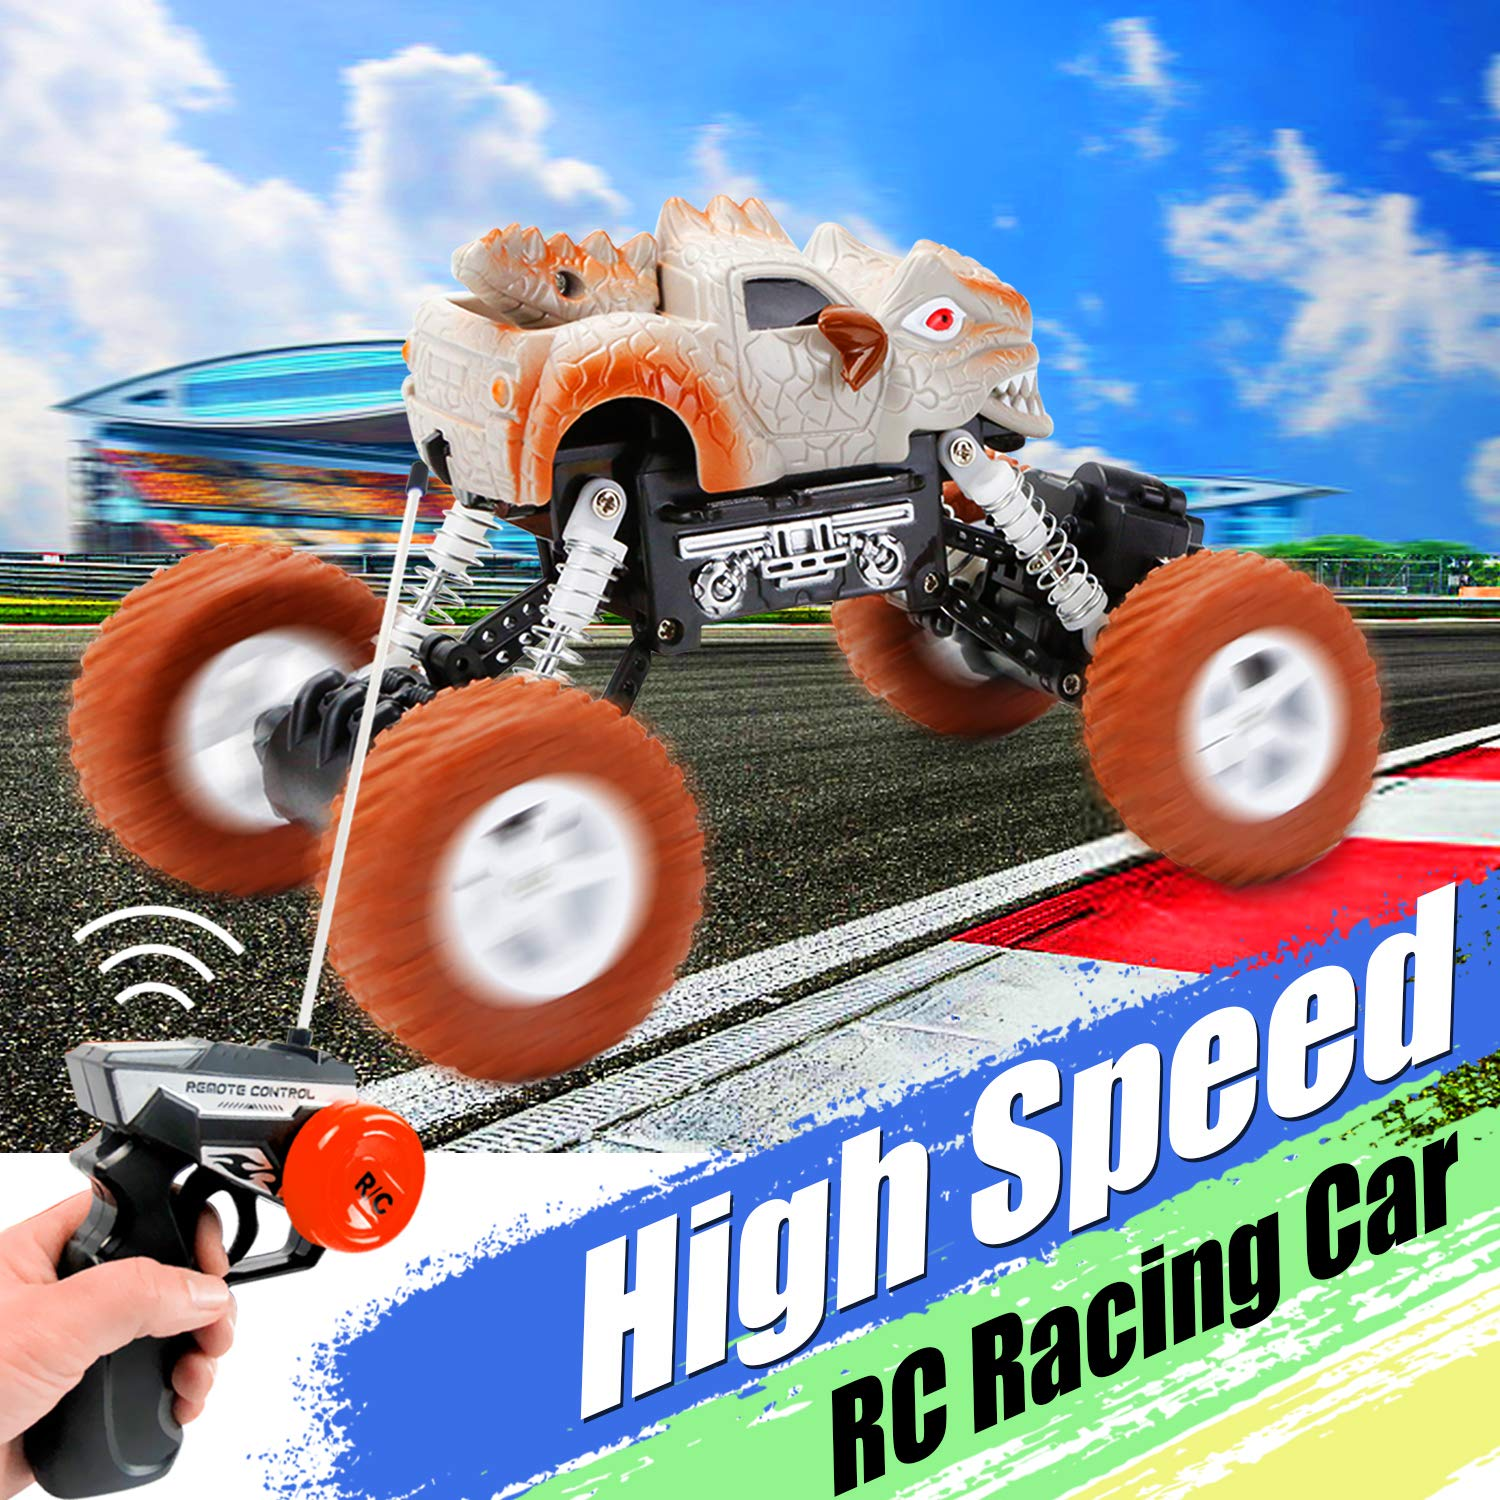 iGeeKid RC Truck for Boys Remote Control Dino Truck 1:22 Scale High Speed Shockproof RC Cars 4WD Racing RC Vehicle Toy Cars for Kids Boys /& Girls Birthday Holiday Xmas Gift